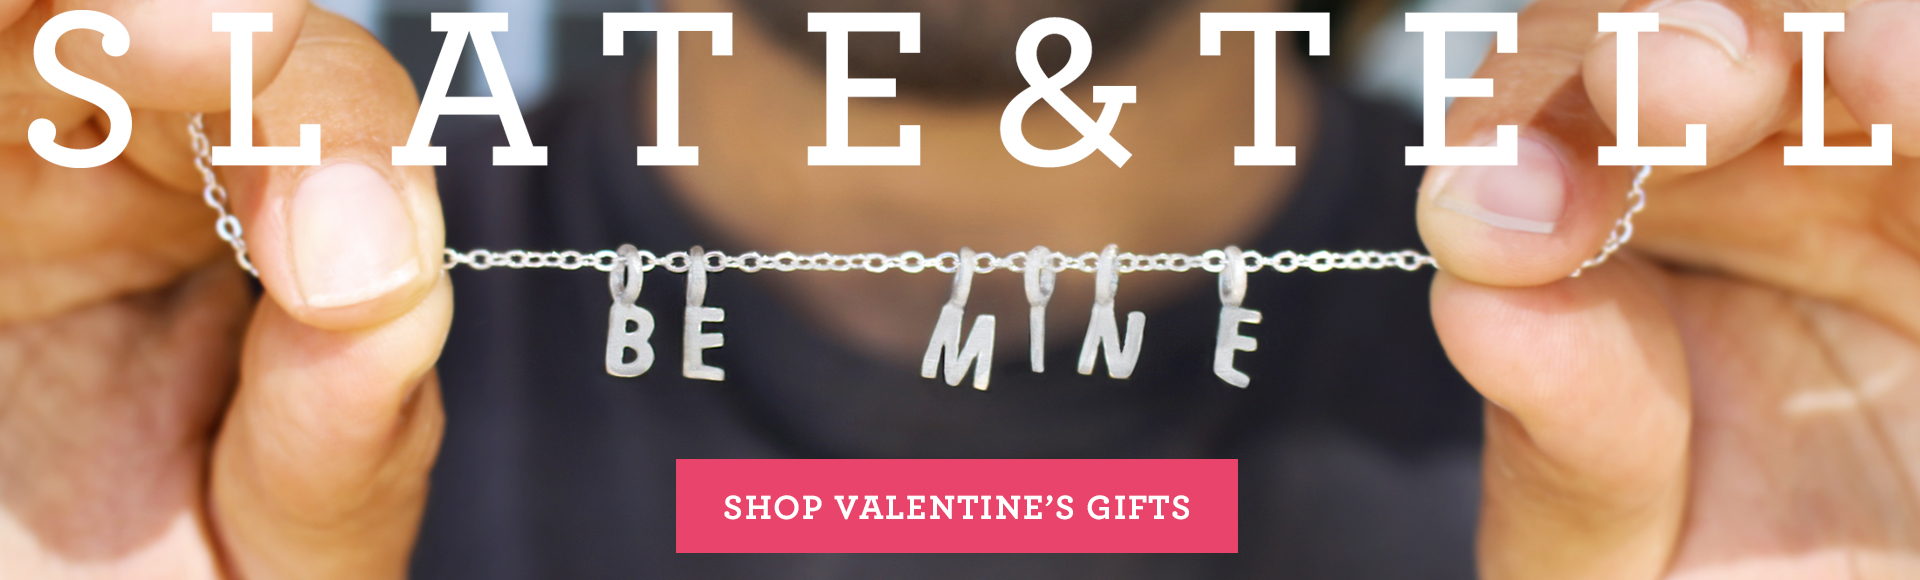 Slate and Tell Valentine's Day!